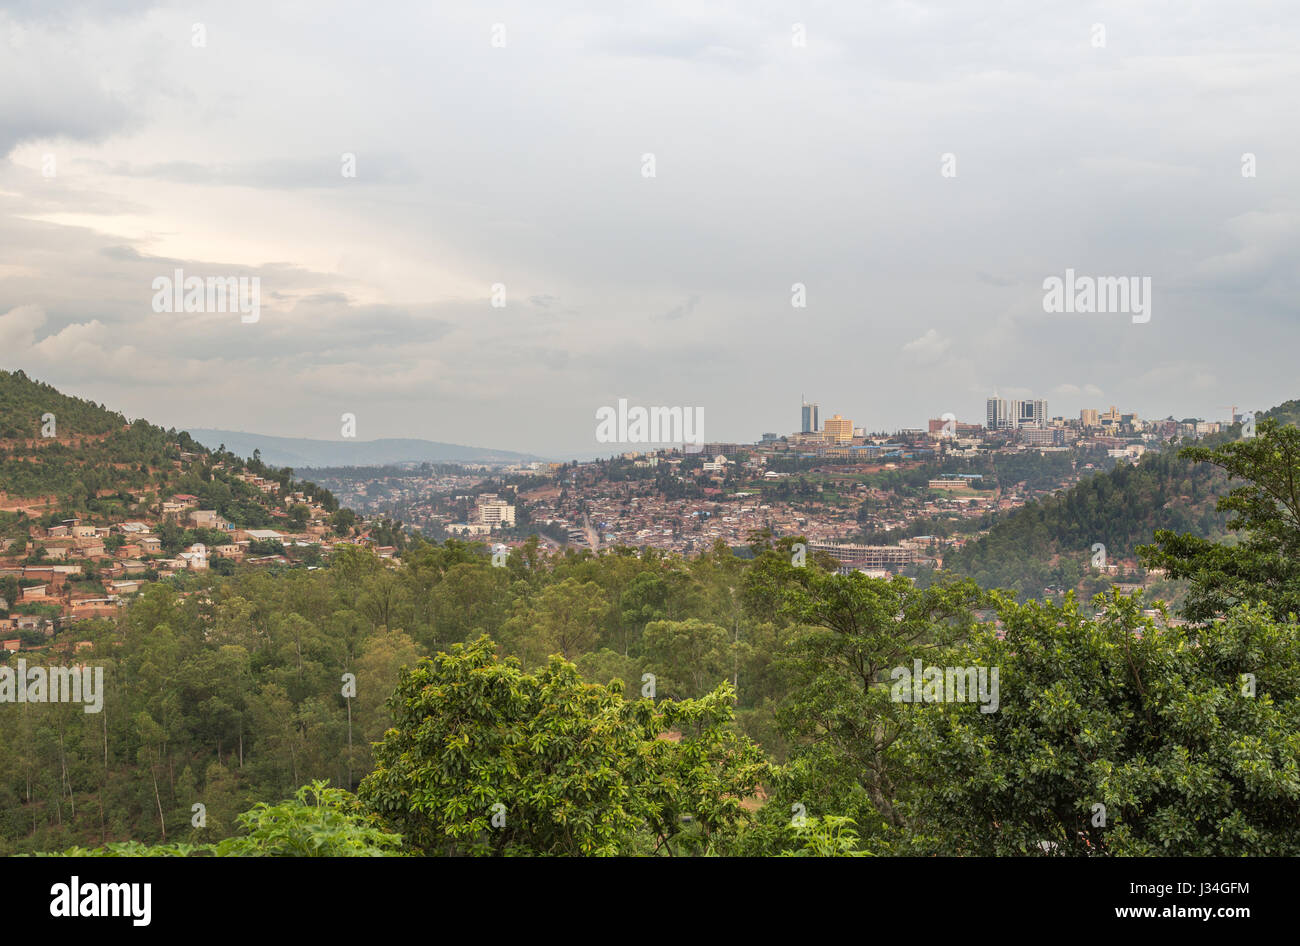 Overlooking the city of KIgali in Rwanda, Africa - Stock Image